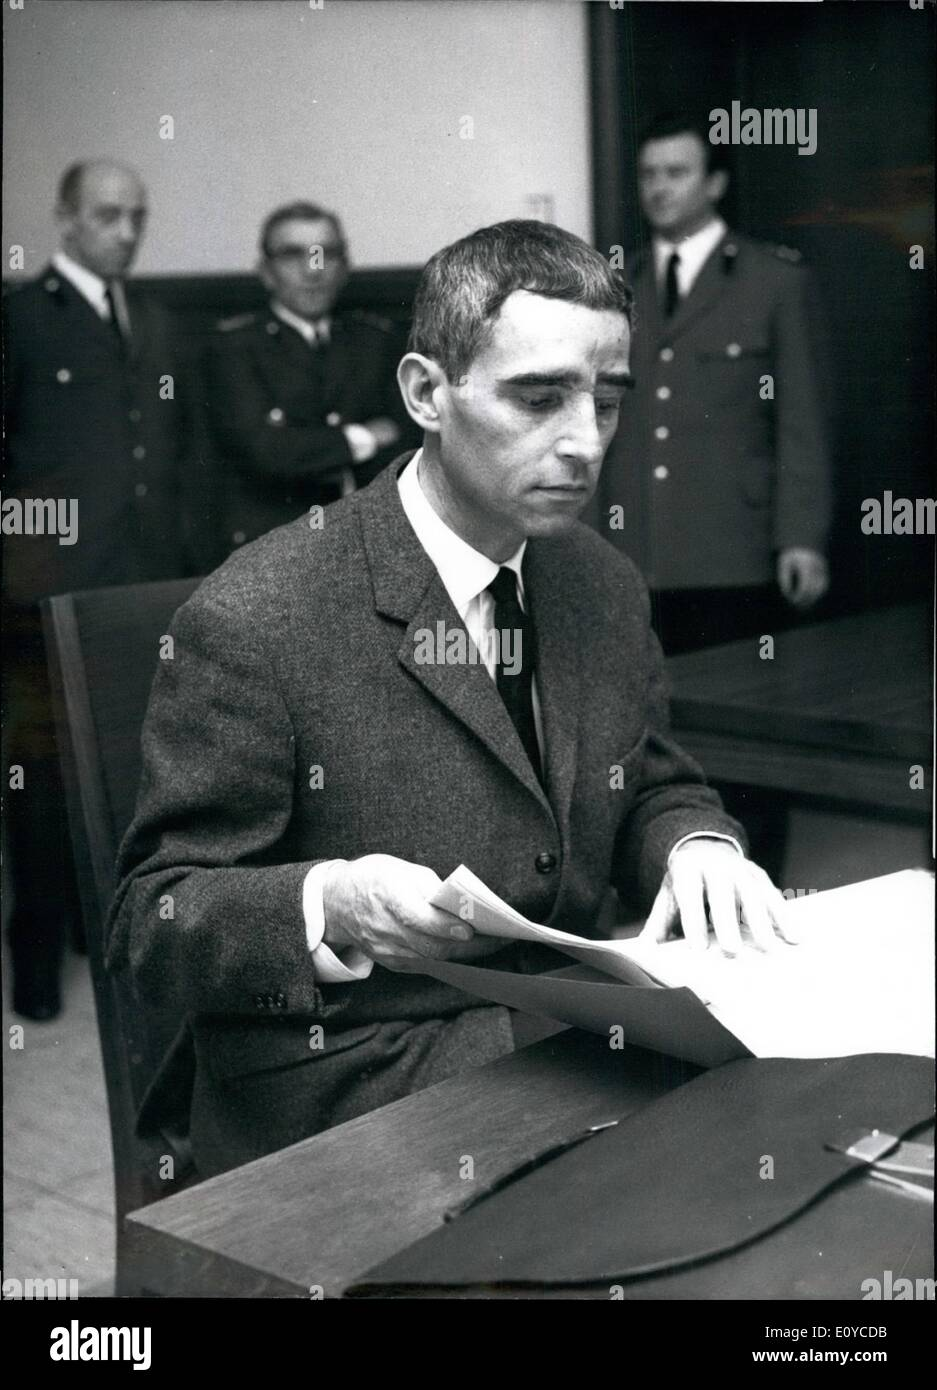 Nov. 11, 1969 - Trial against West-German spy for Russia, Heinz Sutterlin, in Cologne: The 45 years old photographer from Bonn is suspected of having sent to the USSR, with the help of his wife Leonore, 50 German state secrets, about 1000 secret papers and 1880 confidential documents from the German foreign office. The trial is interrupted until November 24th, since the judges are going to fly to the USA, in order to hear there, on a secret place, the main witness Mr. Runge, ancient military of the Soviet Secret Service KGB, who deserted to the United States - Stock Image